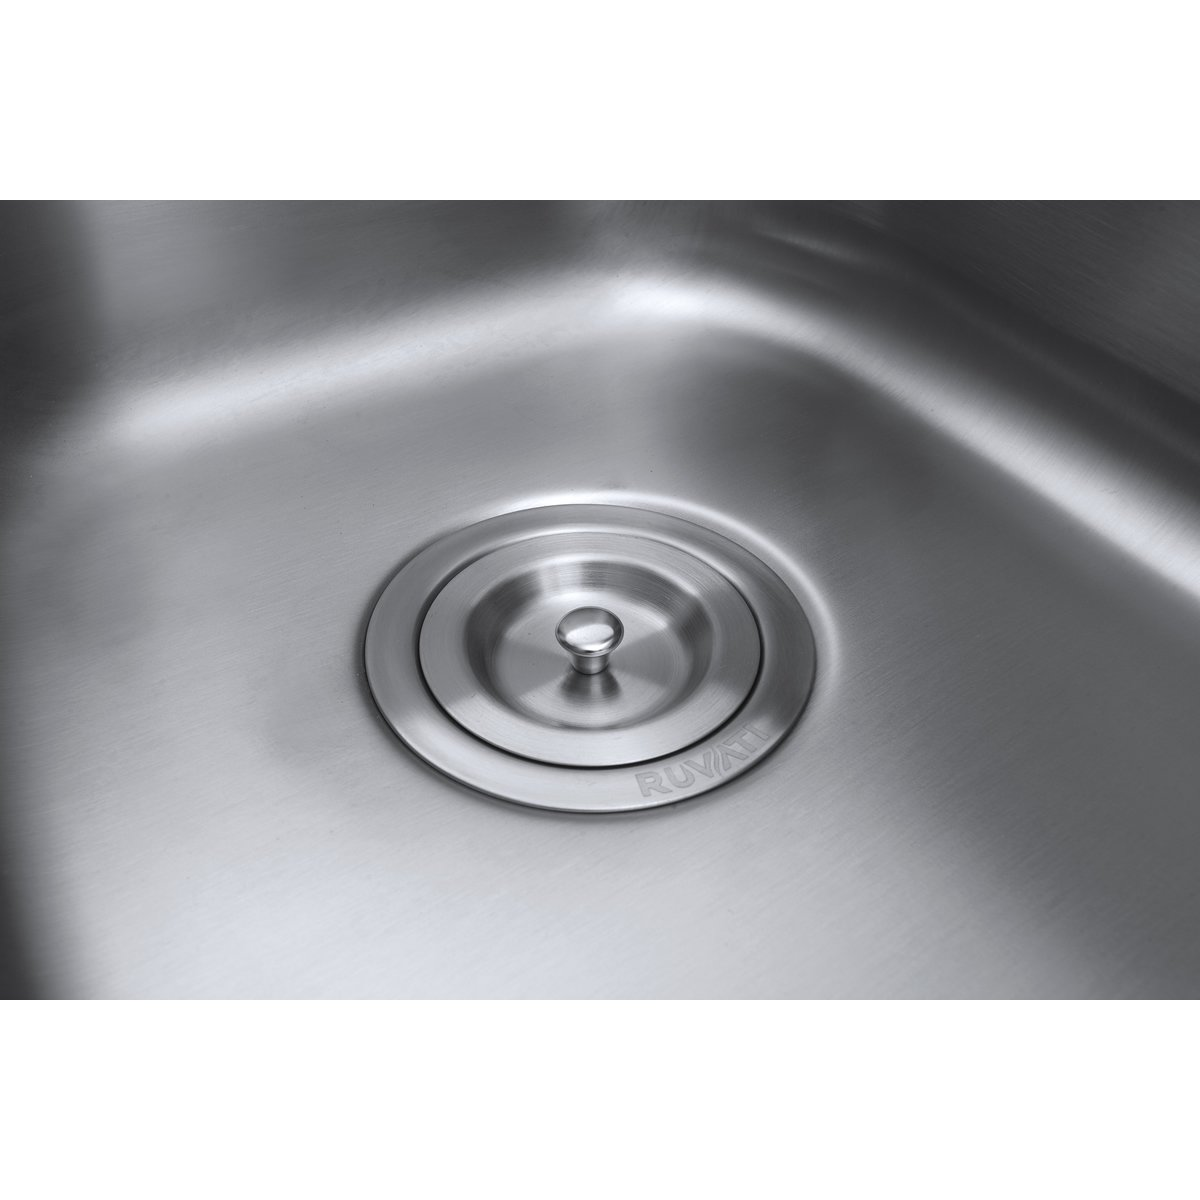 Ruvati 32-inch Undermount 50/50 Double Bowl 16 Gauge Stainless Steel Kitchen Sink - RVM4300 by Ruvati (Image #10)